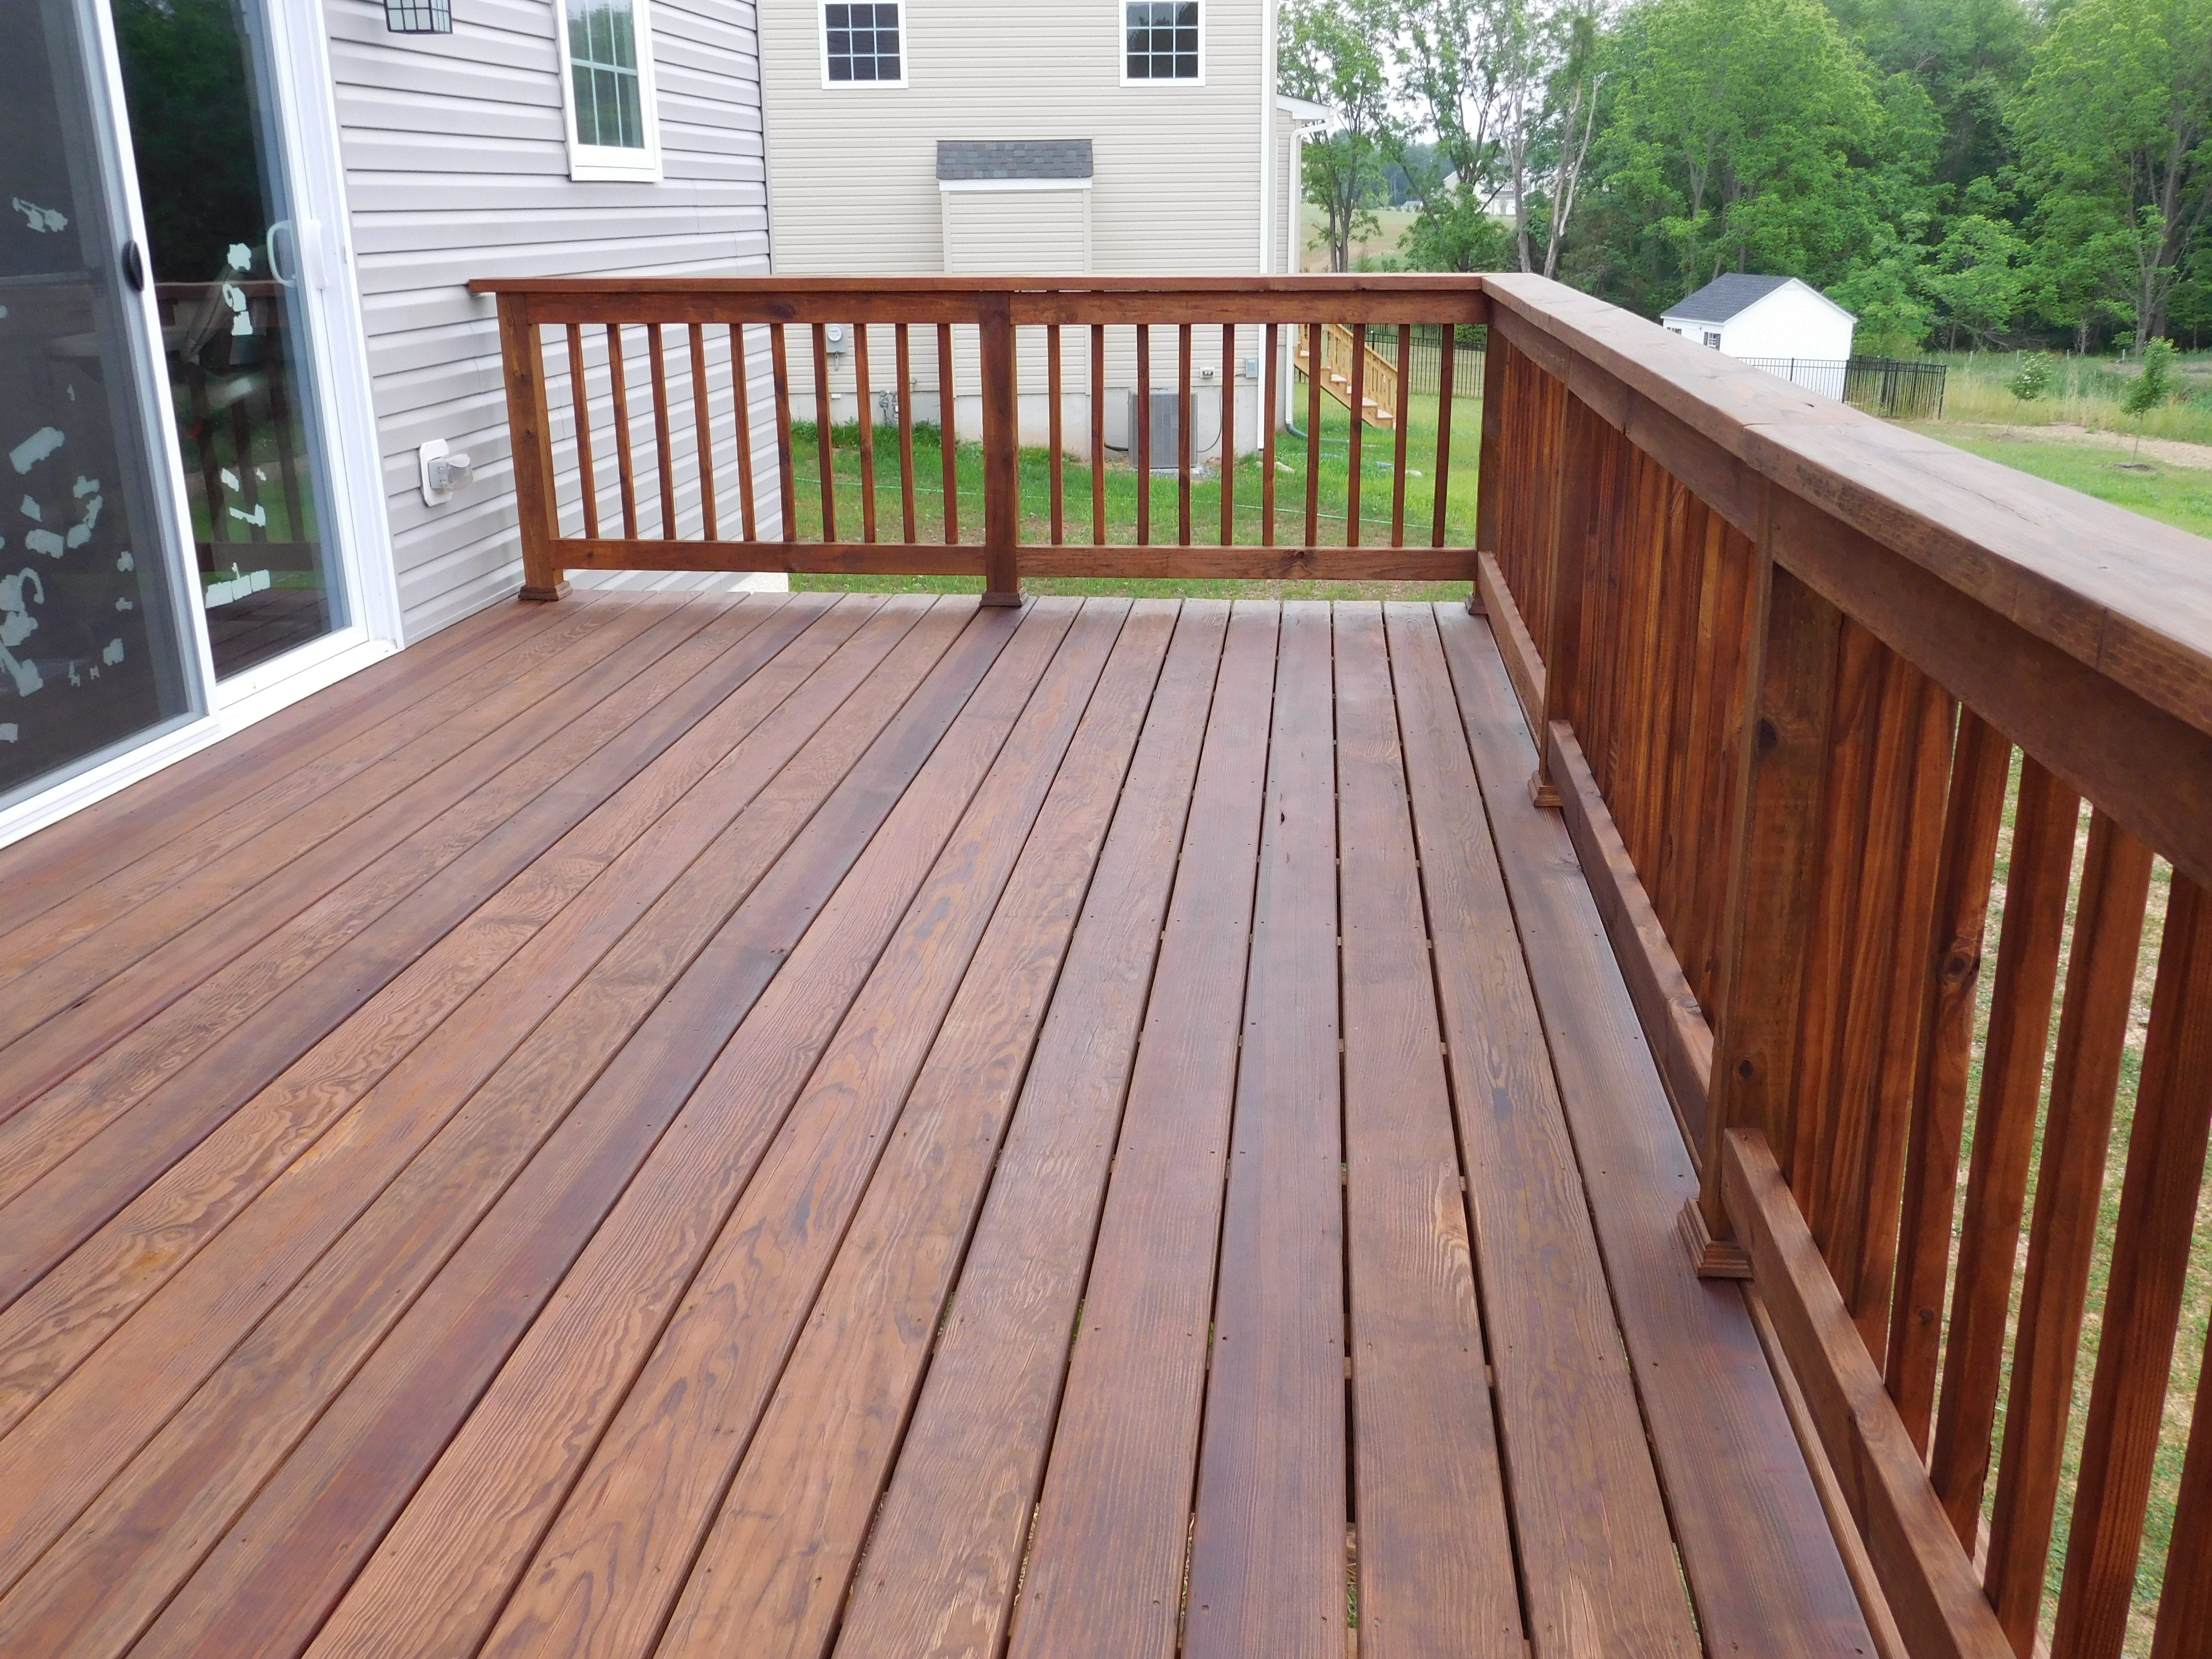 Deck Staining Royersford Deck Painting Sealing Washing with dimensions 4608 X 3456